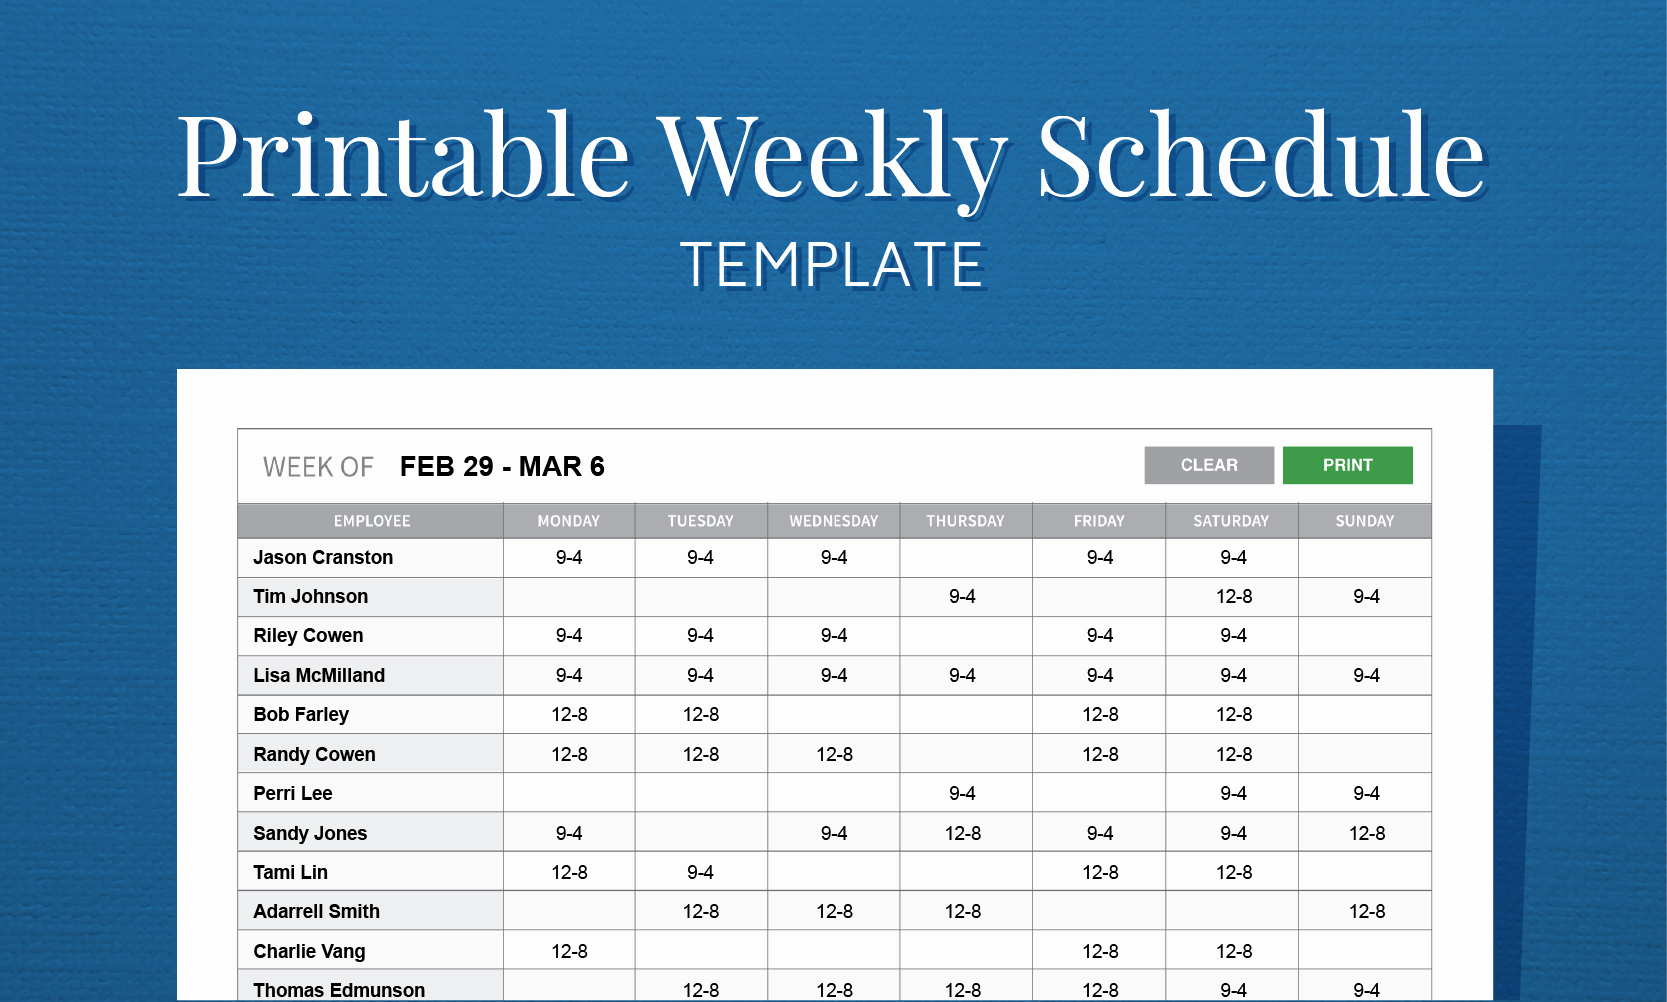 Free Employee Schedule Template Inspirational Free Printable Work Schedule Template for Employee